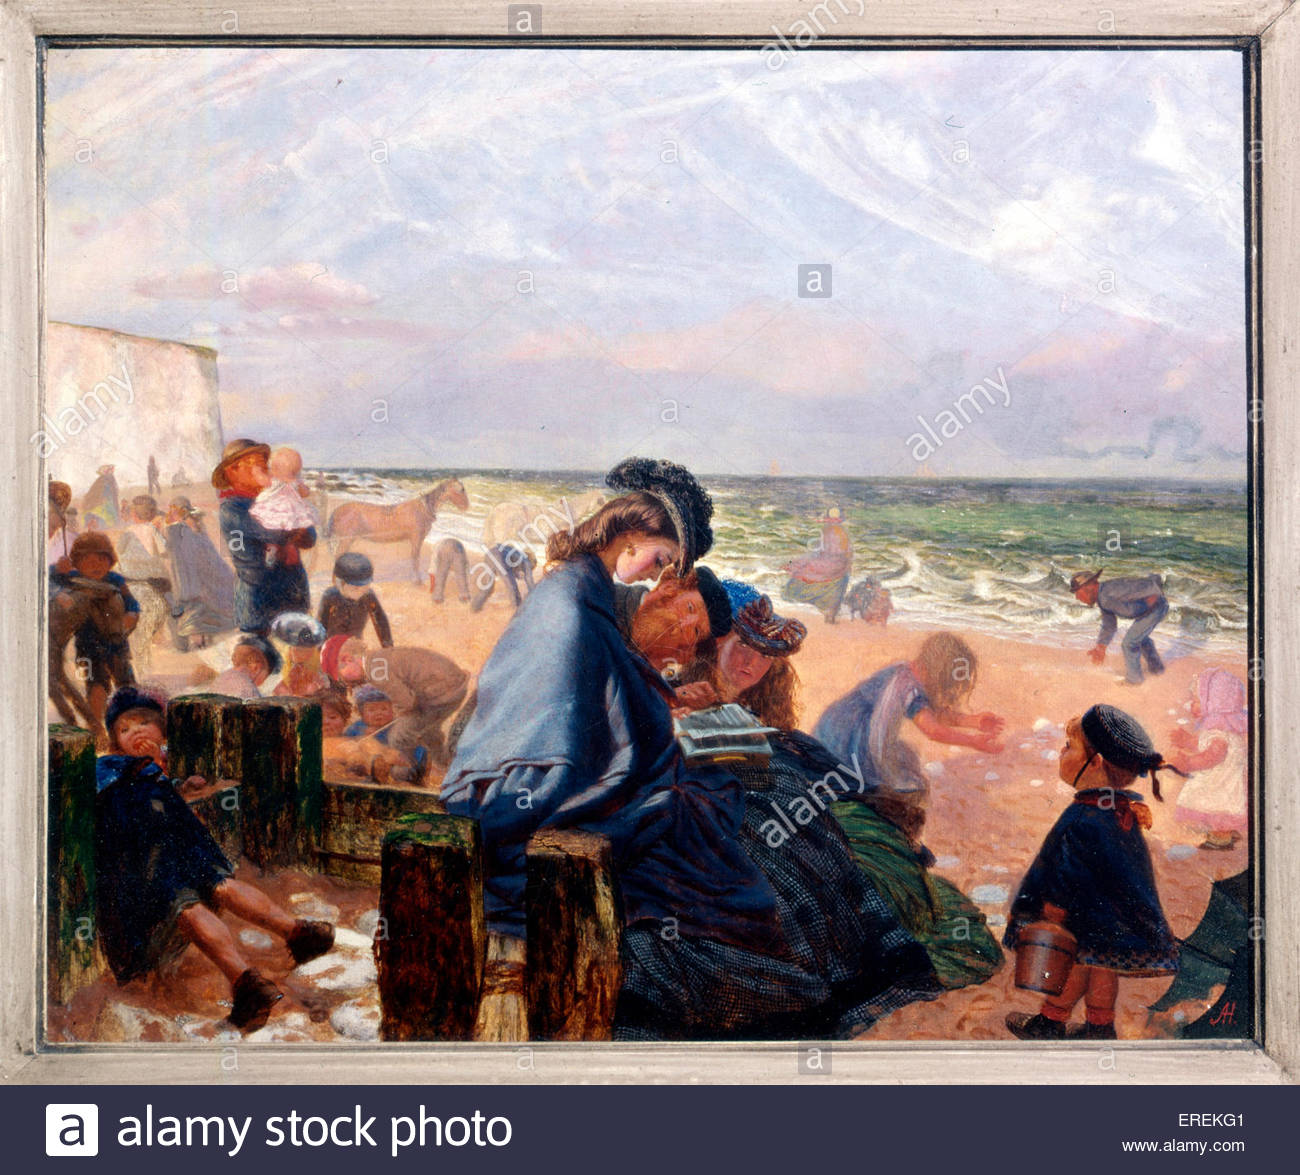 Ramsgate Sands by Arthur Boyd Houghton, British painter (1836-1875). 1861, oil painting, support: 241 x 298 mm. - Stock Image